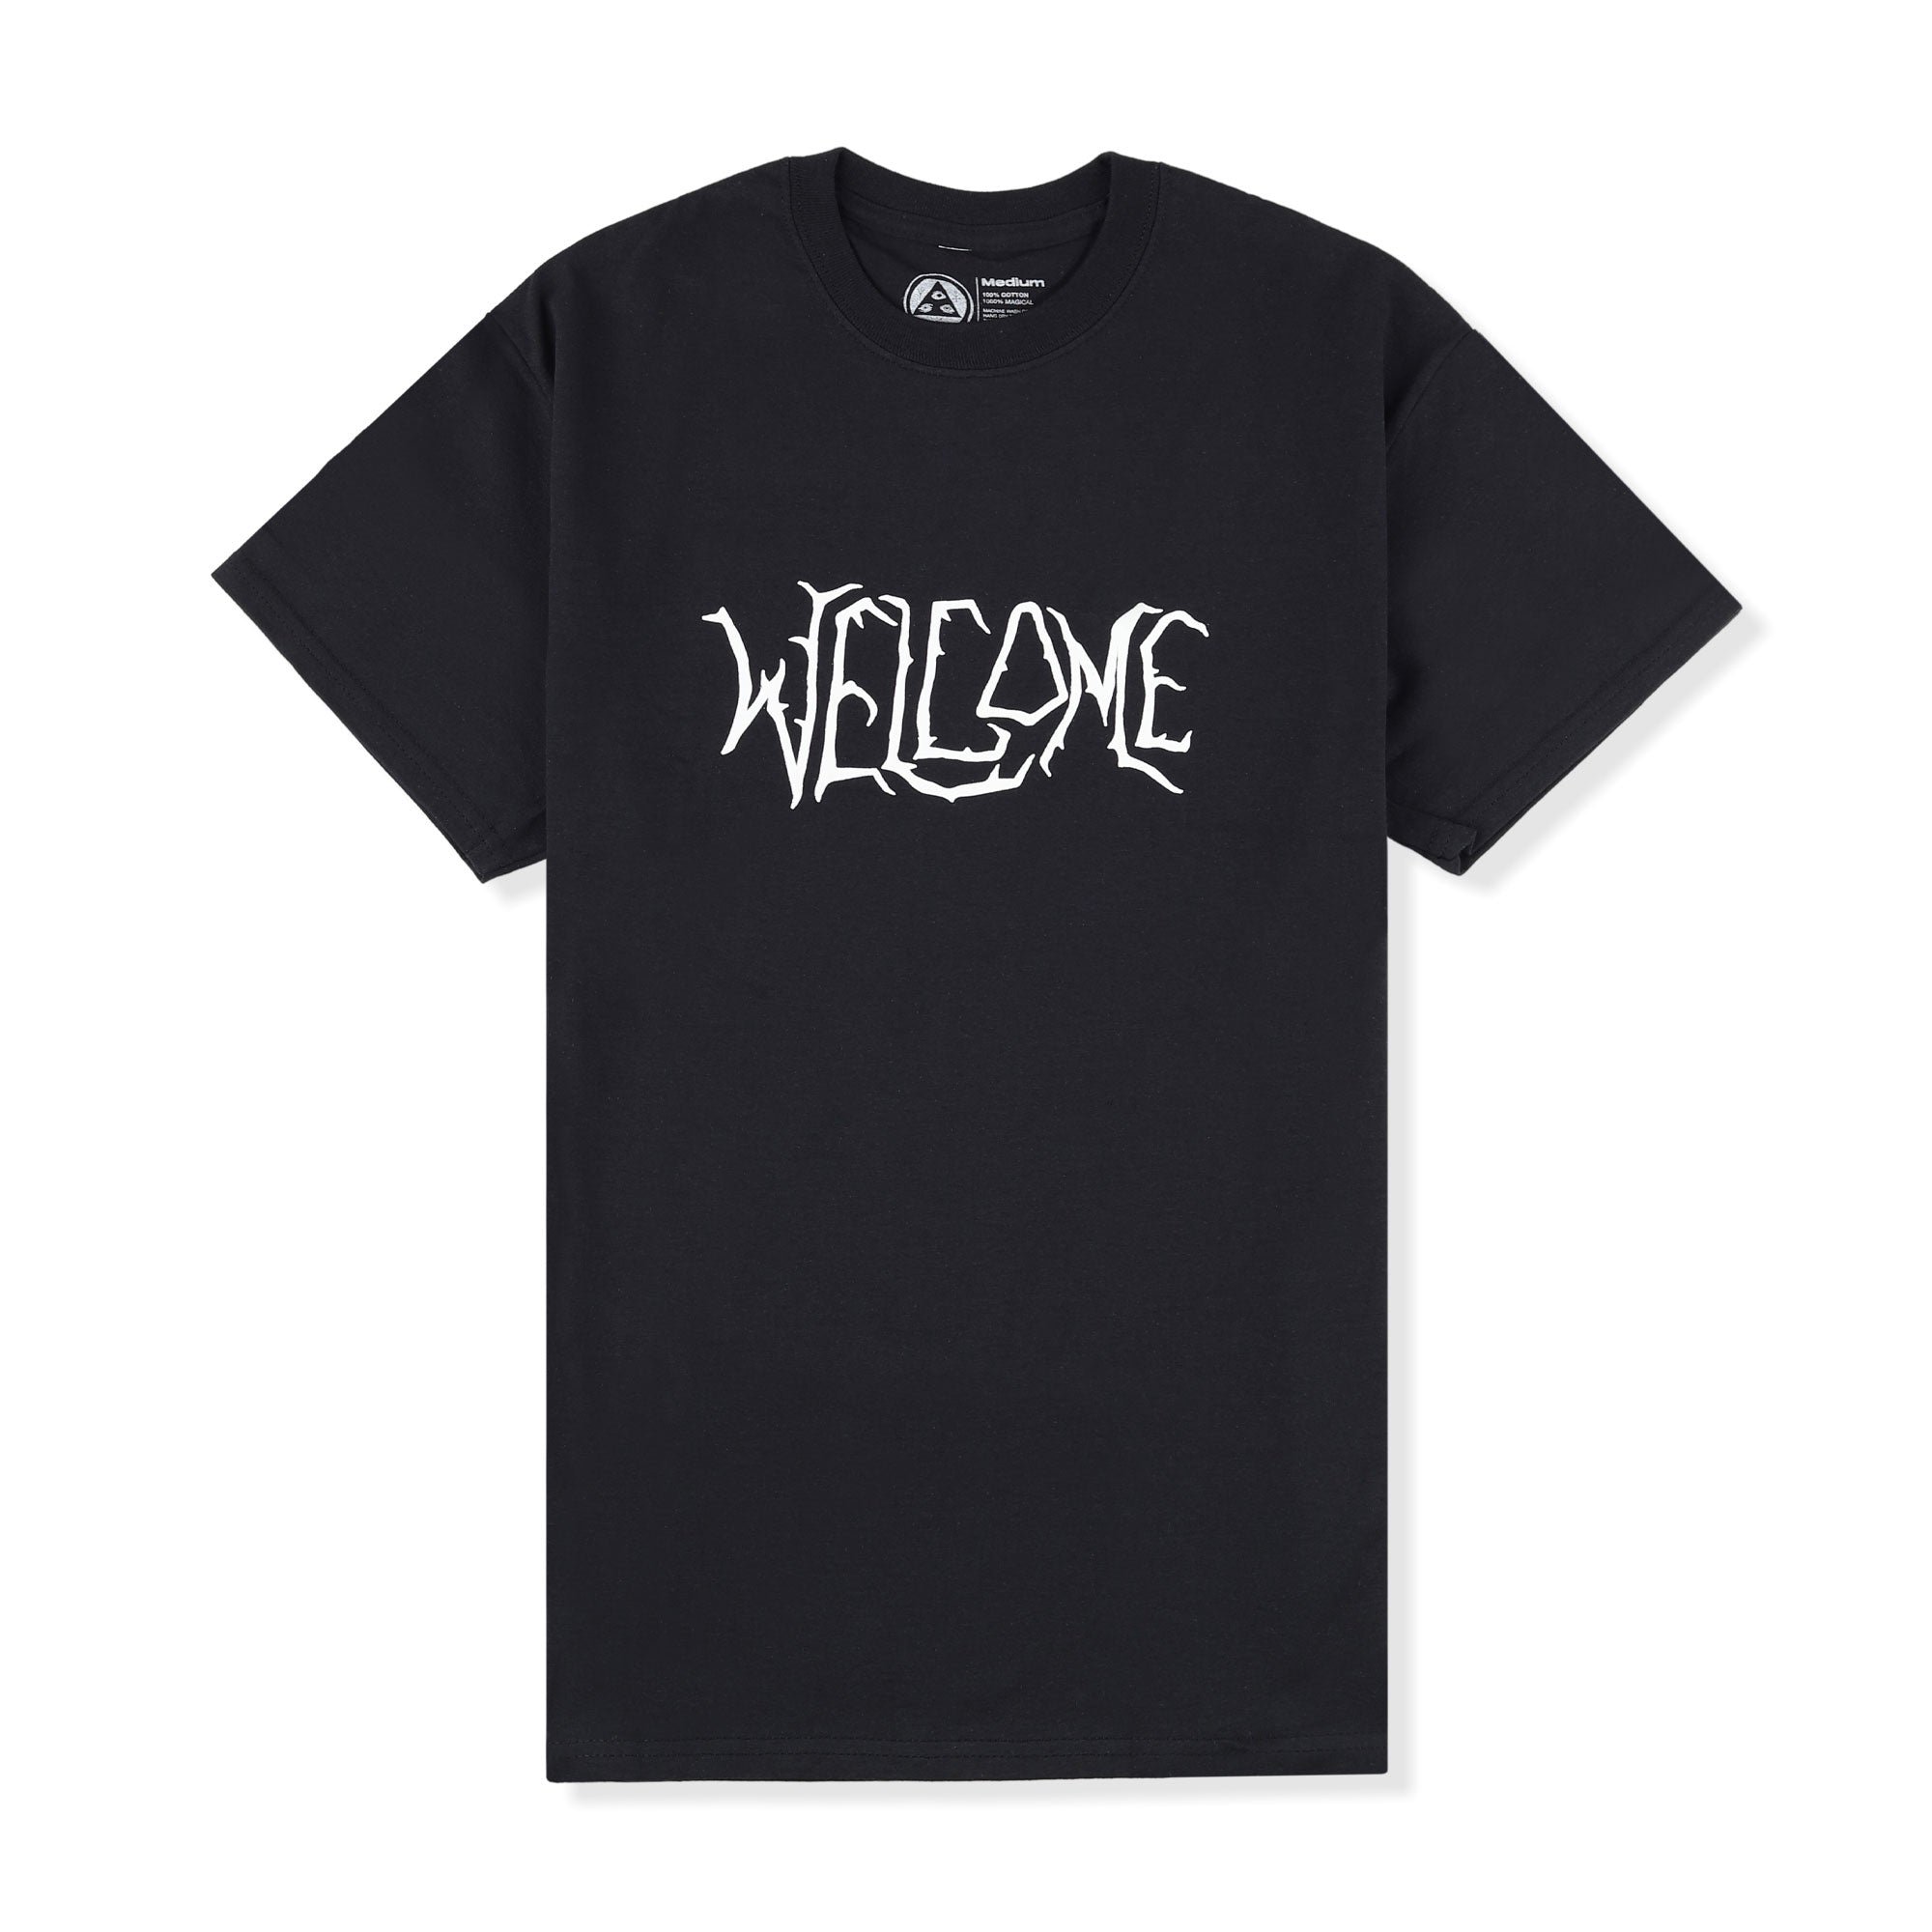 Welcome Black Lodge Tee Product Photo #1